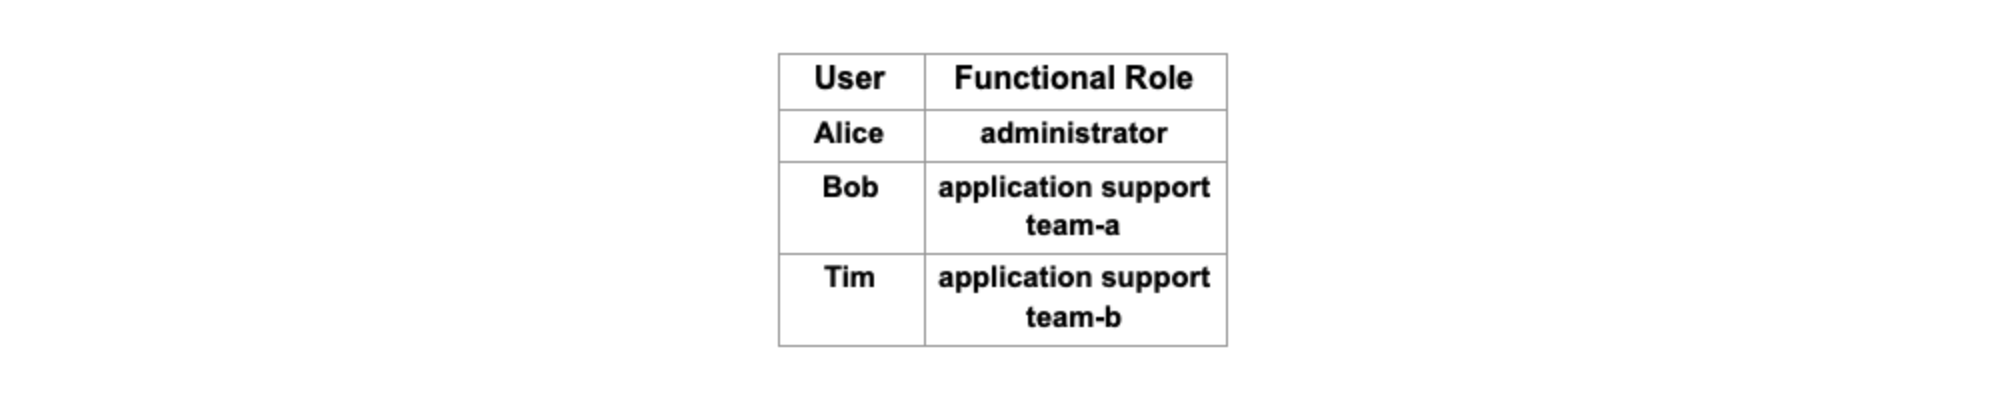 User functional role chart